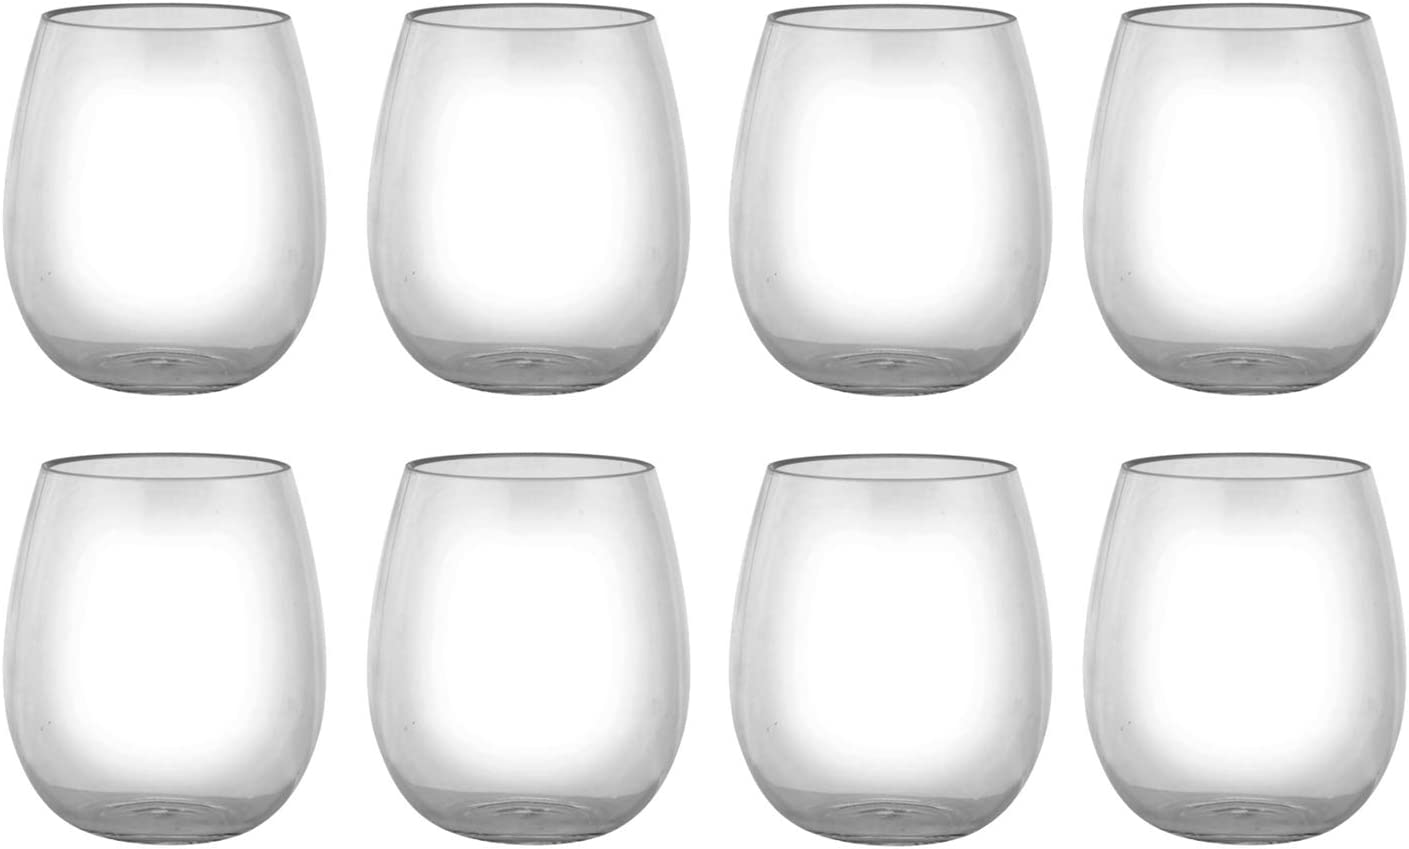 18-ounce Acrylic Glassses Stemless Wine Glasses, set of 8 Clear - Unbreakable, Dishwasher Safe, BPA Free